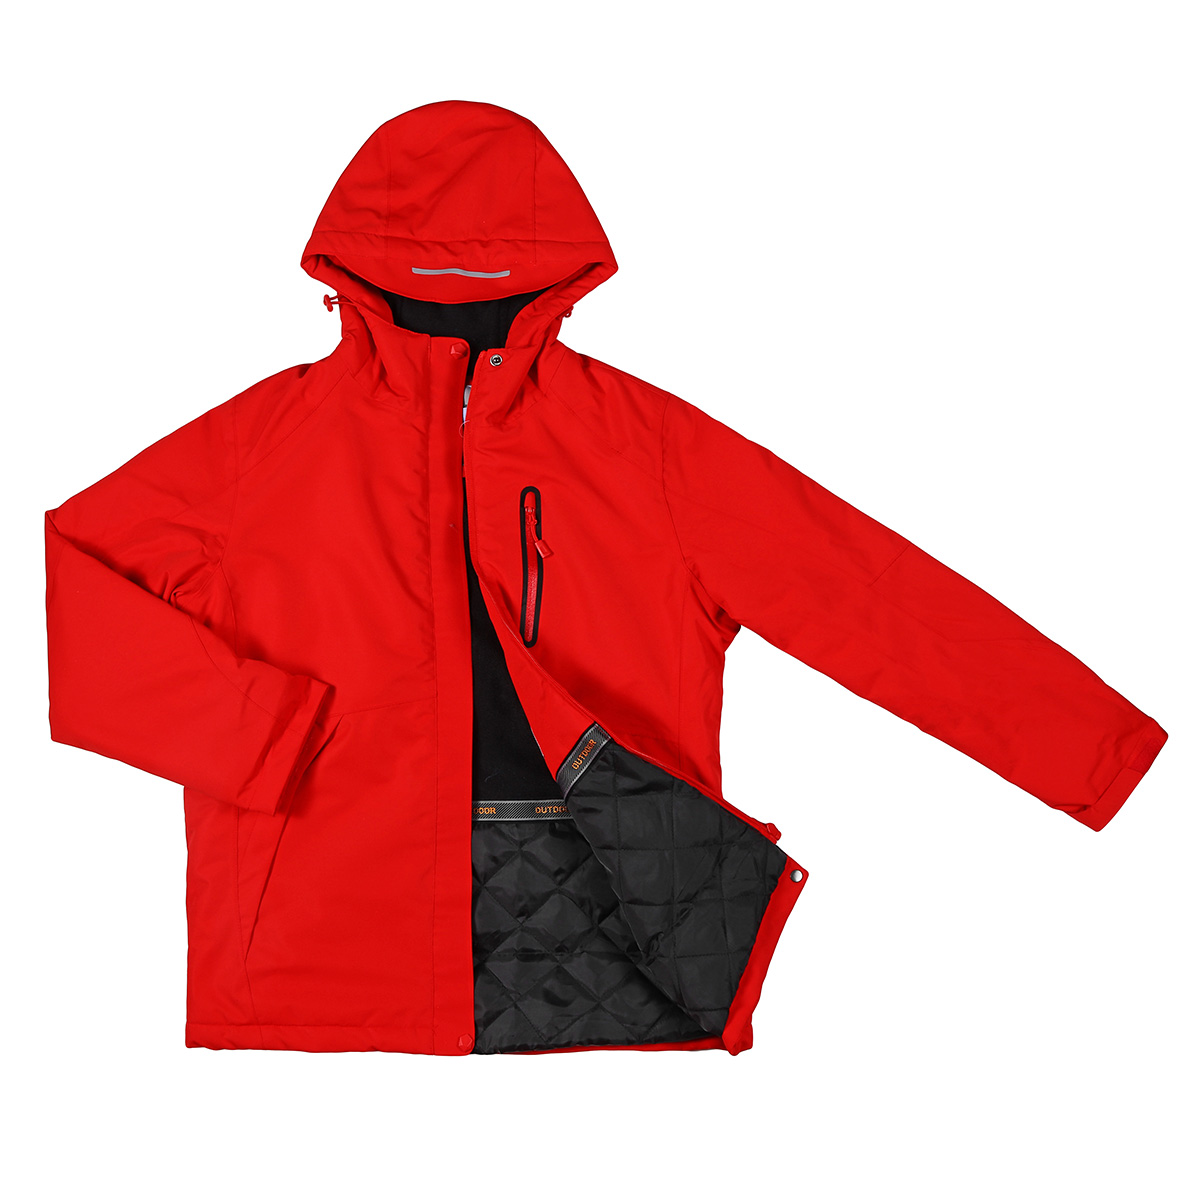 Women Winter Waterproof USB Infrared Heating Hooded Down Jacket Electric Thermal Clothing Coat For Sports Climbing Hiking